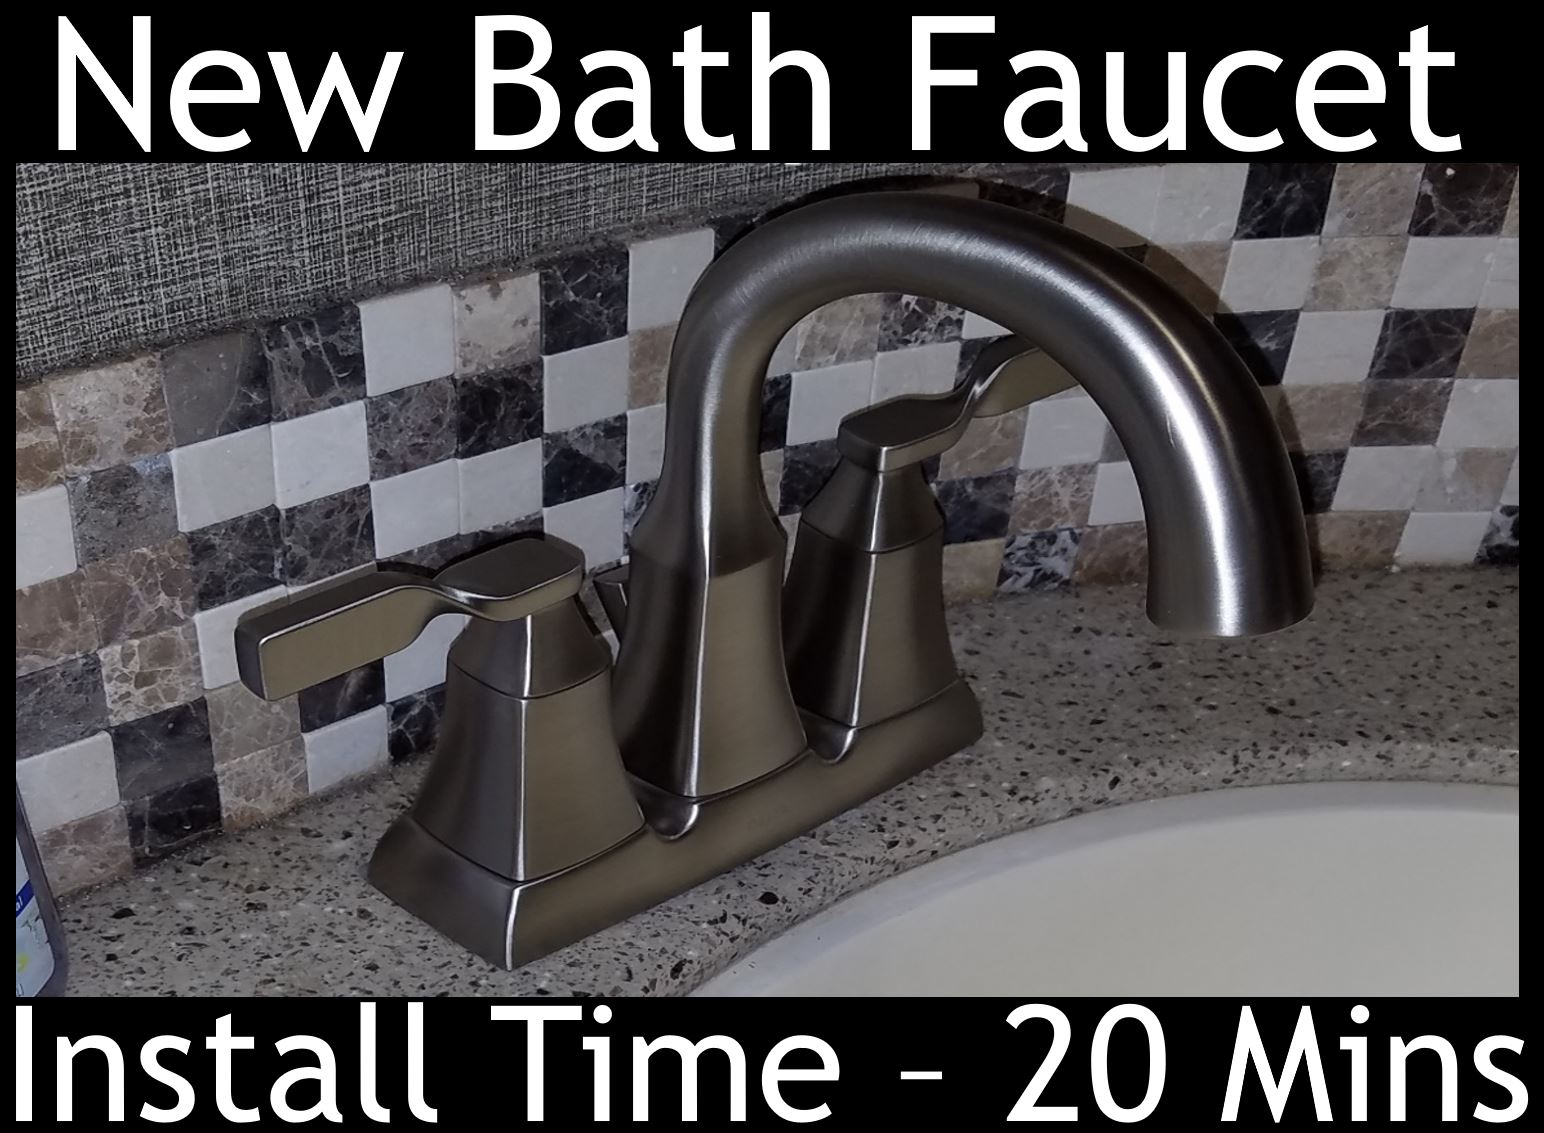 Bathroom Faucet Upgrade | RV With The Tanners - Welcome to Our Blog